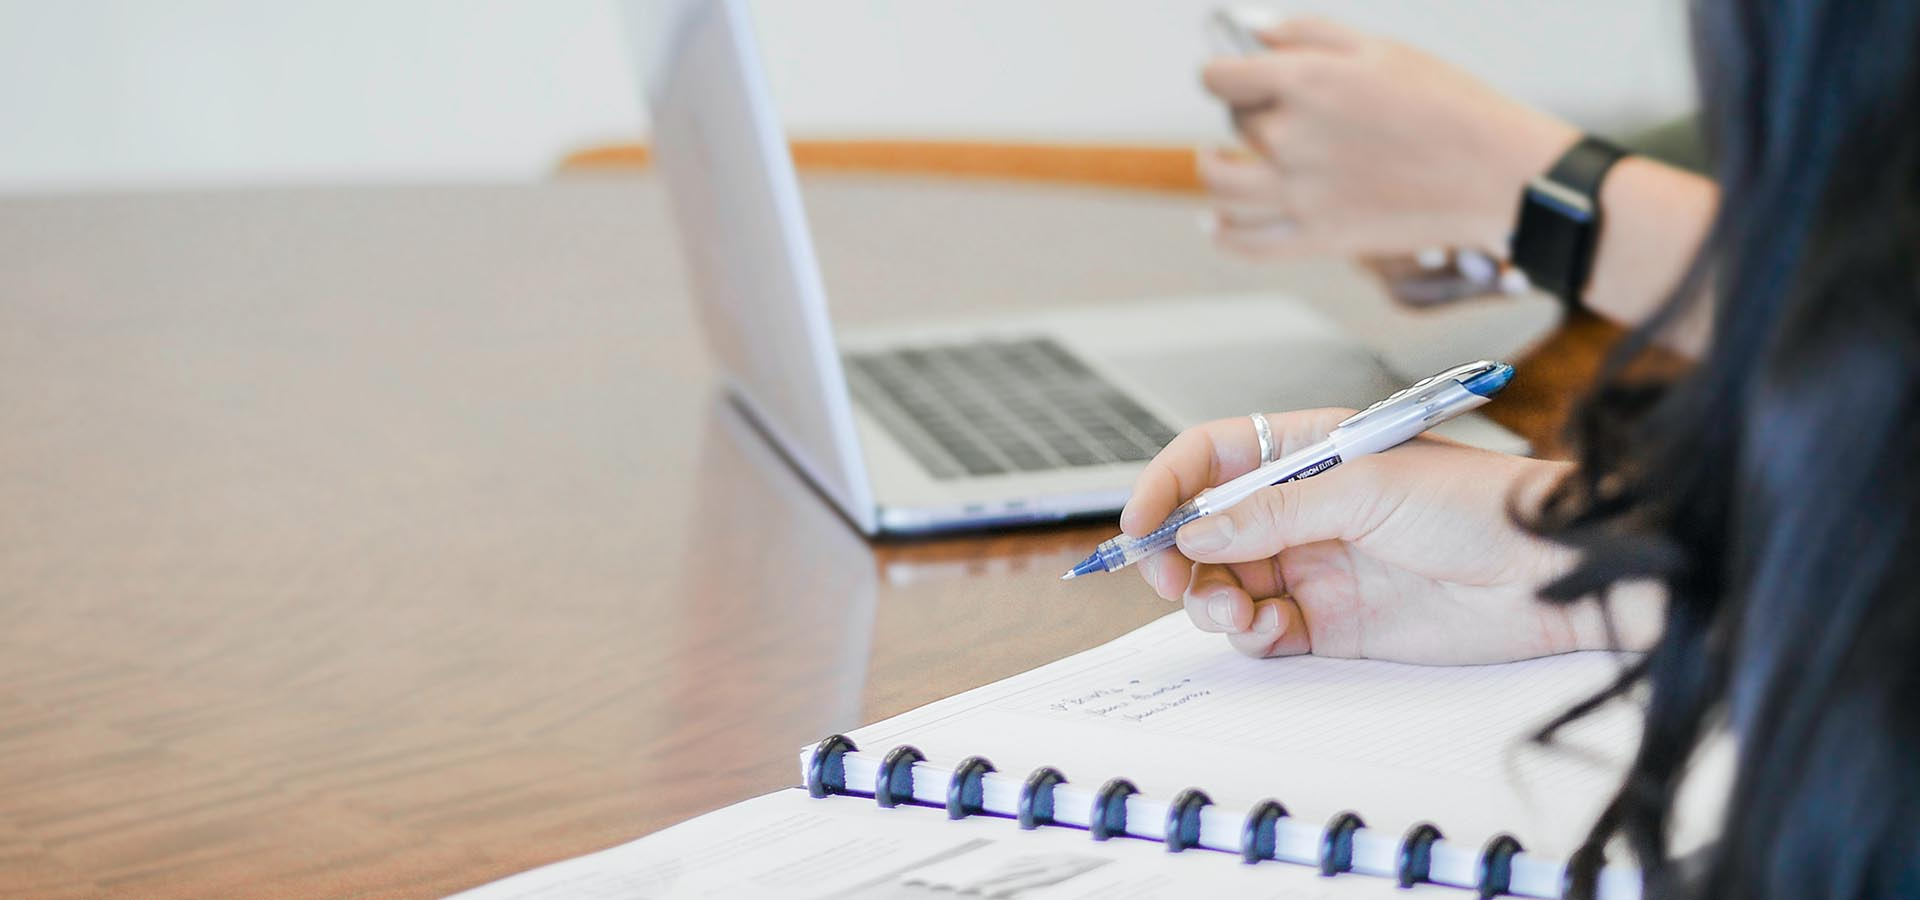 person taking notes in paper notebook with pen next to person on laptop